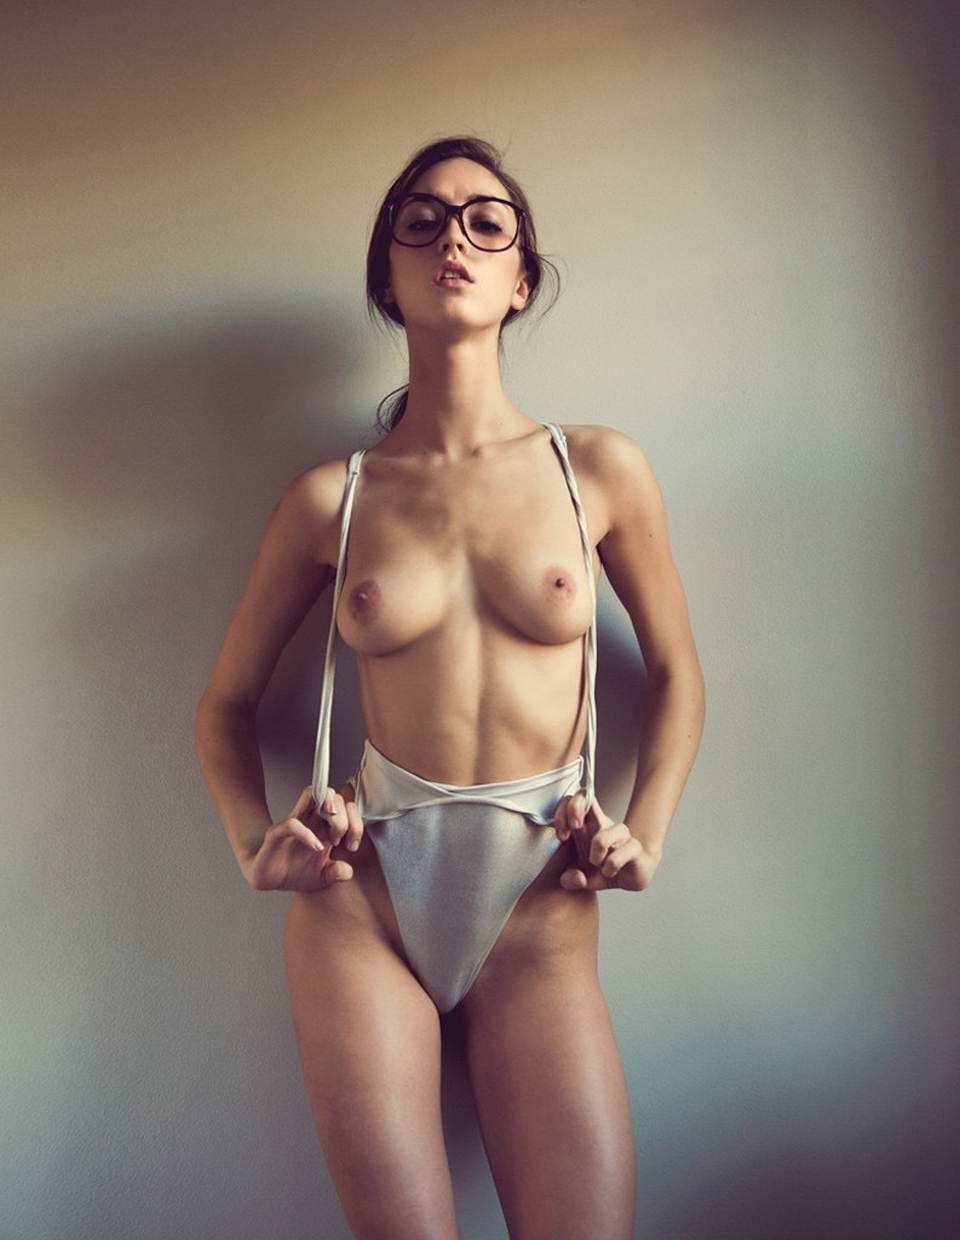 Hot naked hipster chicks softcore #4